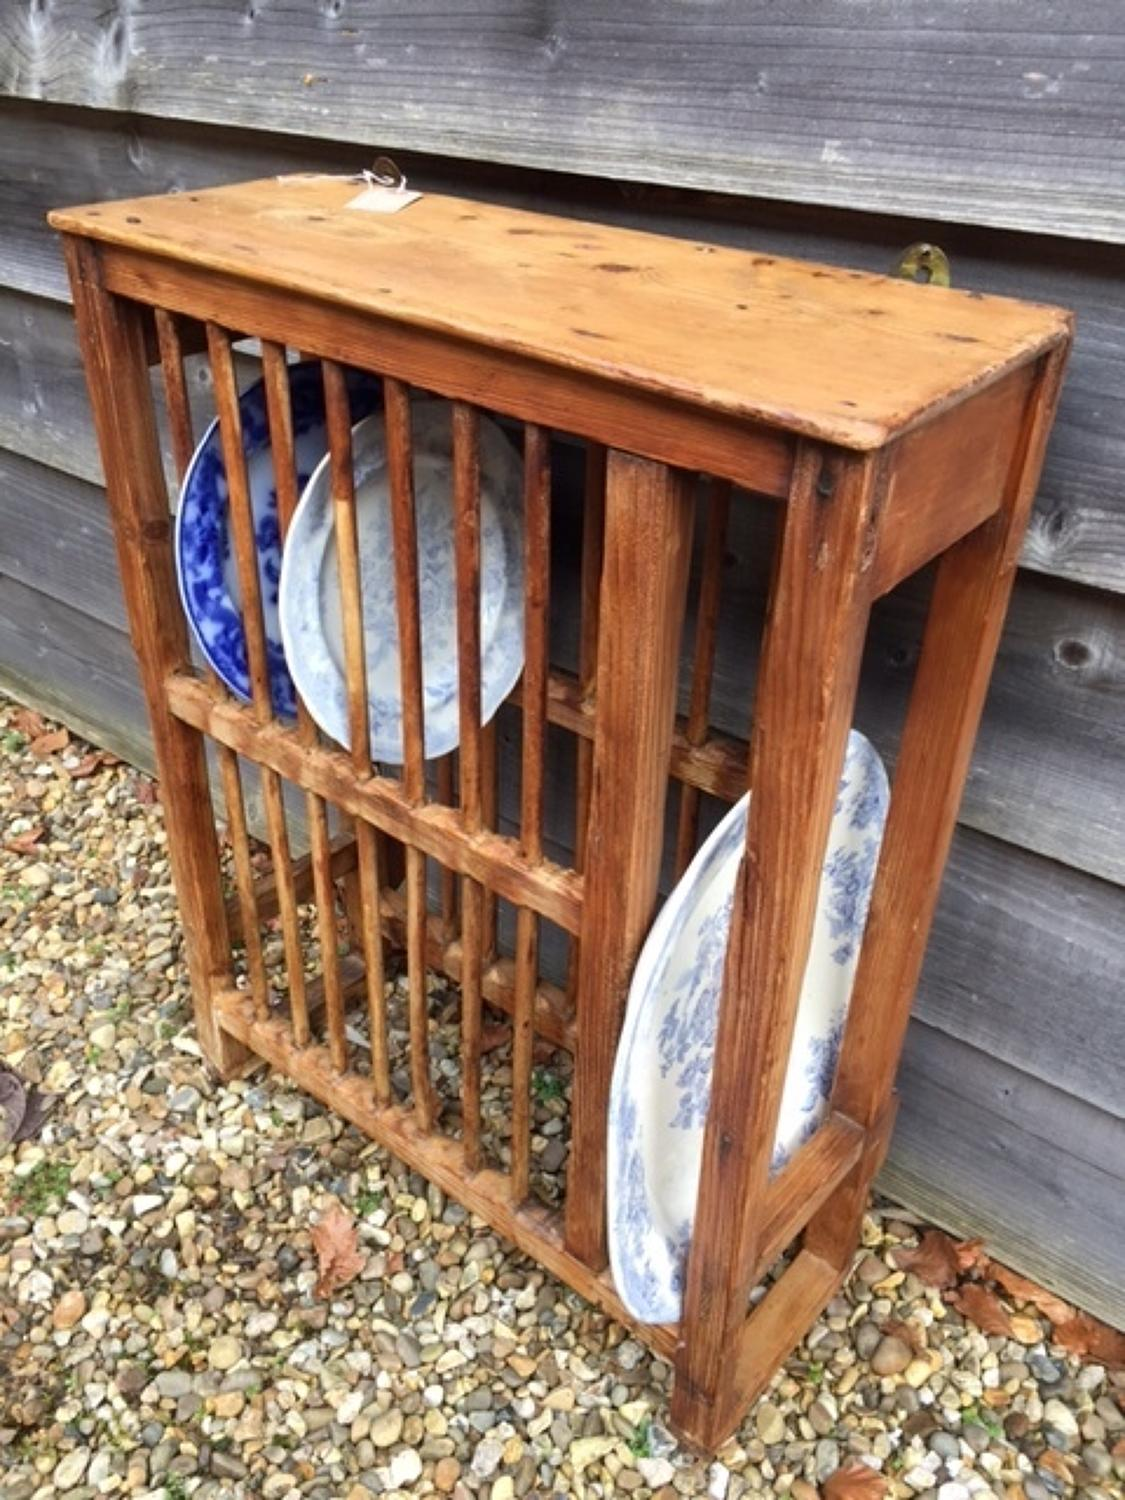 Victorian Pine Plate Rack : pine plate rack - pezcame.com